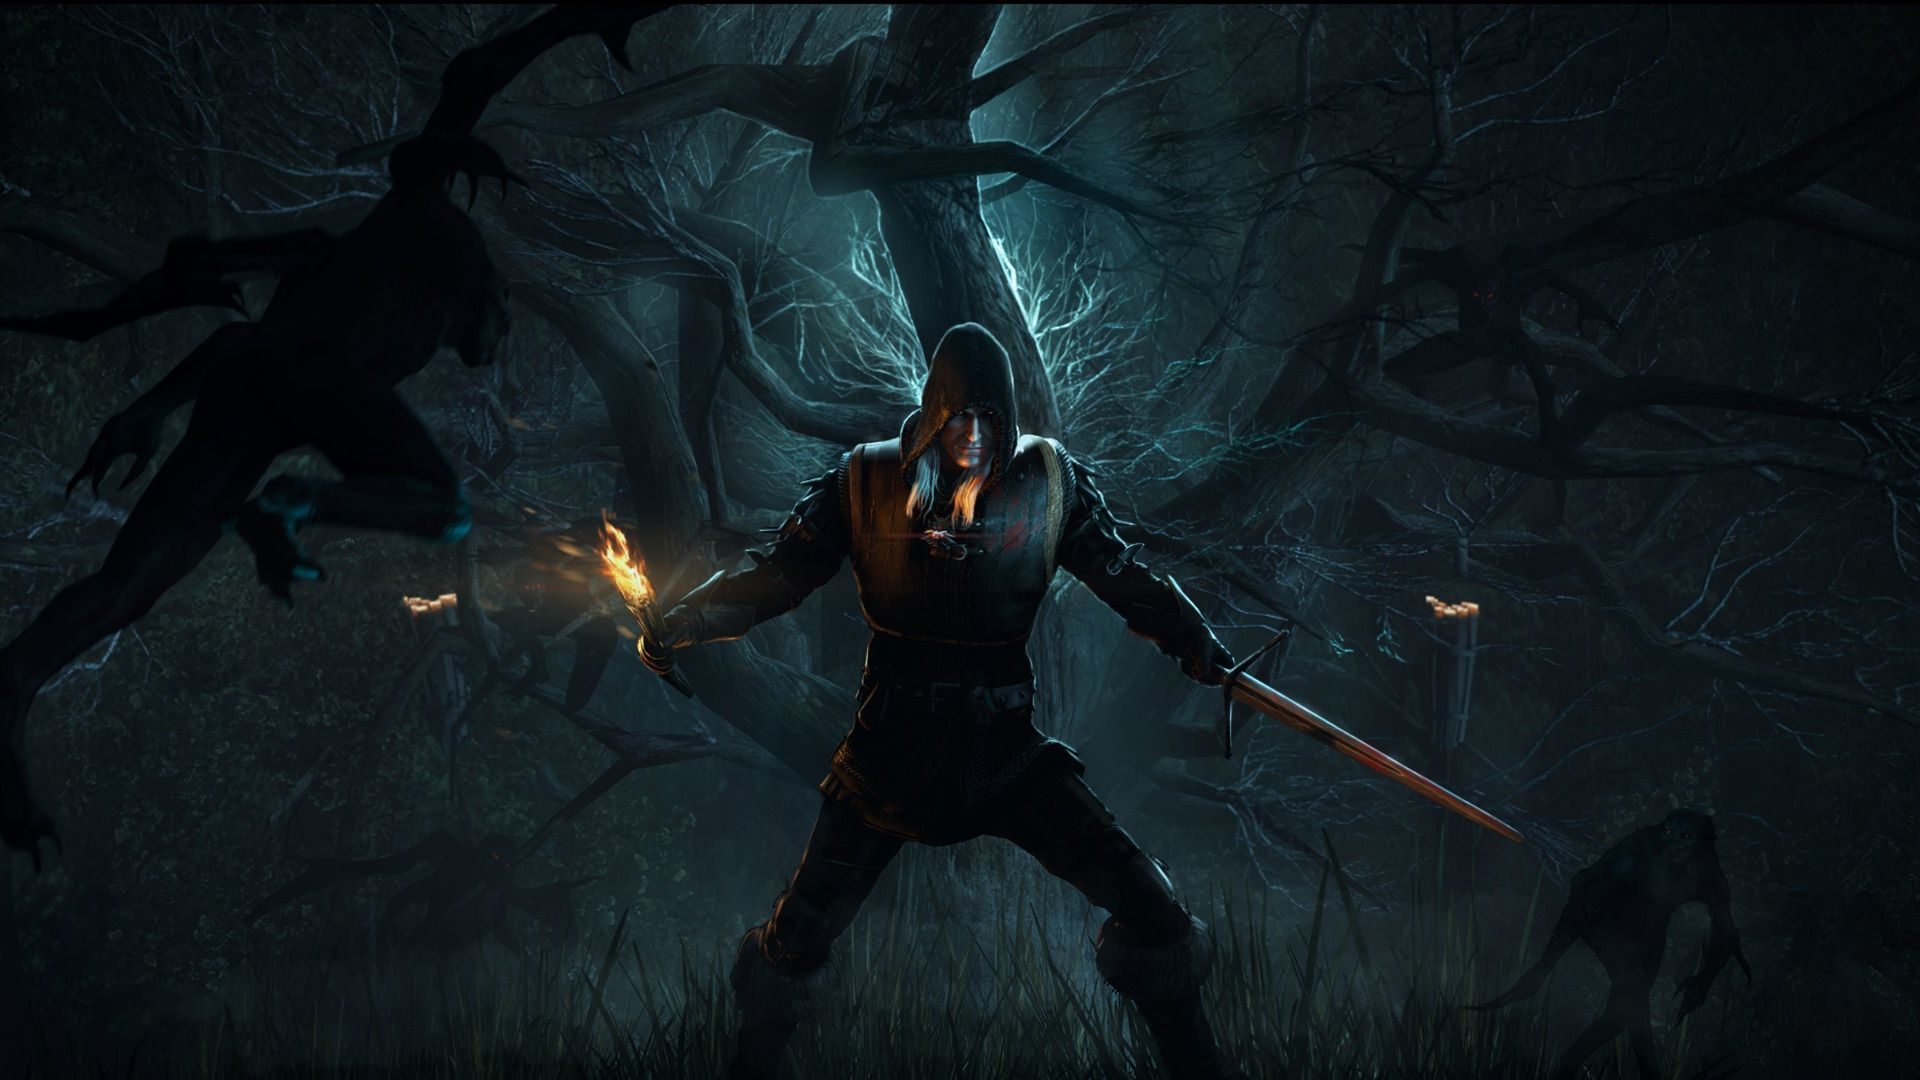 Wallpaper the witcher 3 geralt alone forest 1920x1080